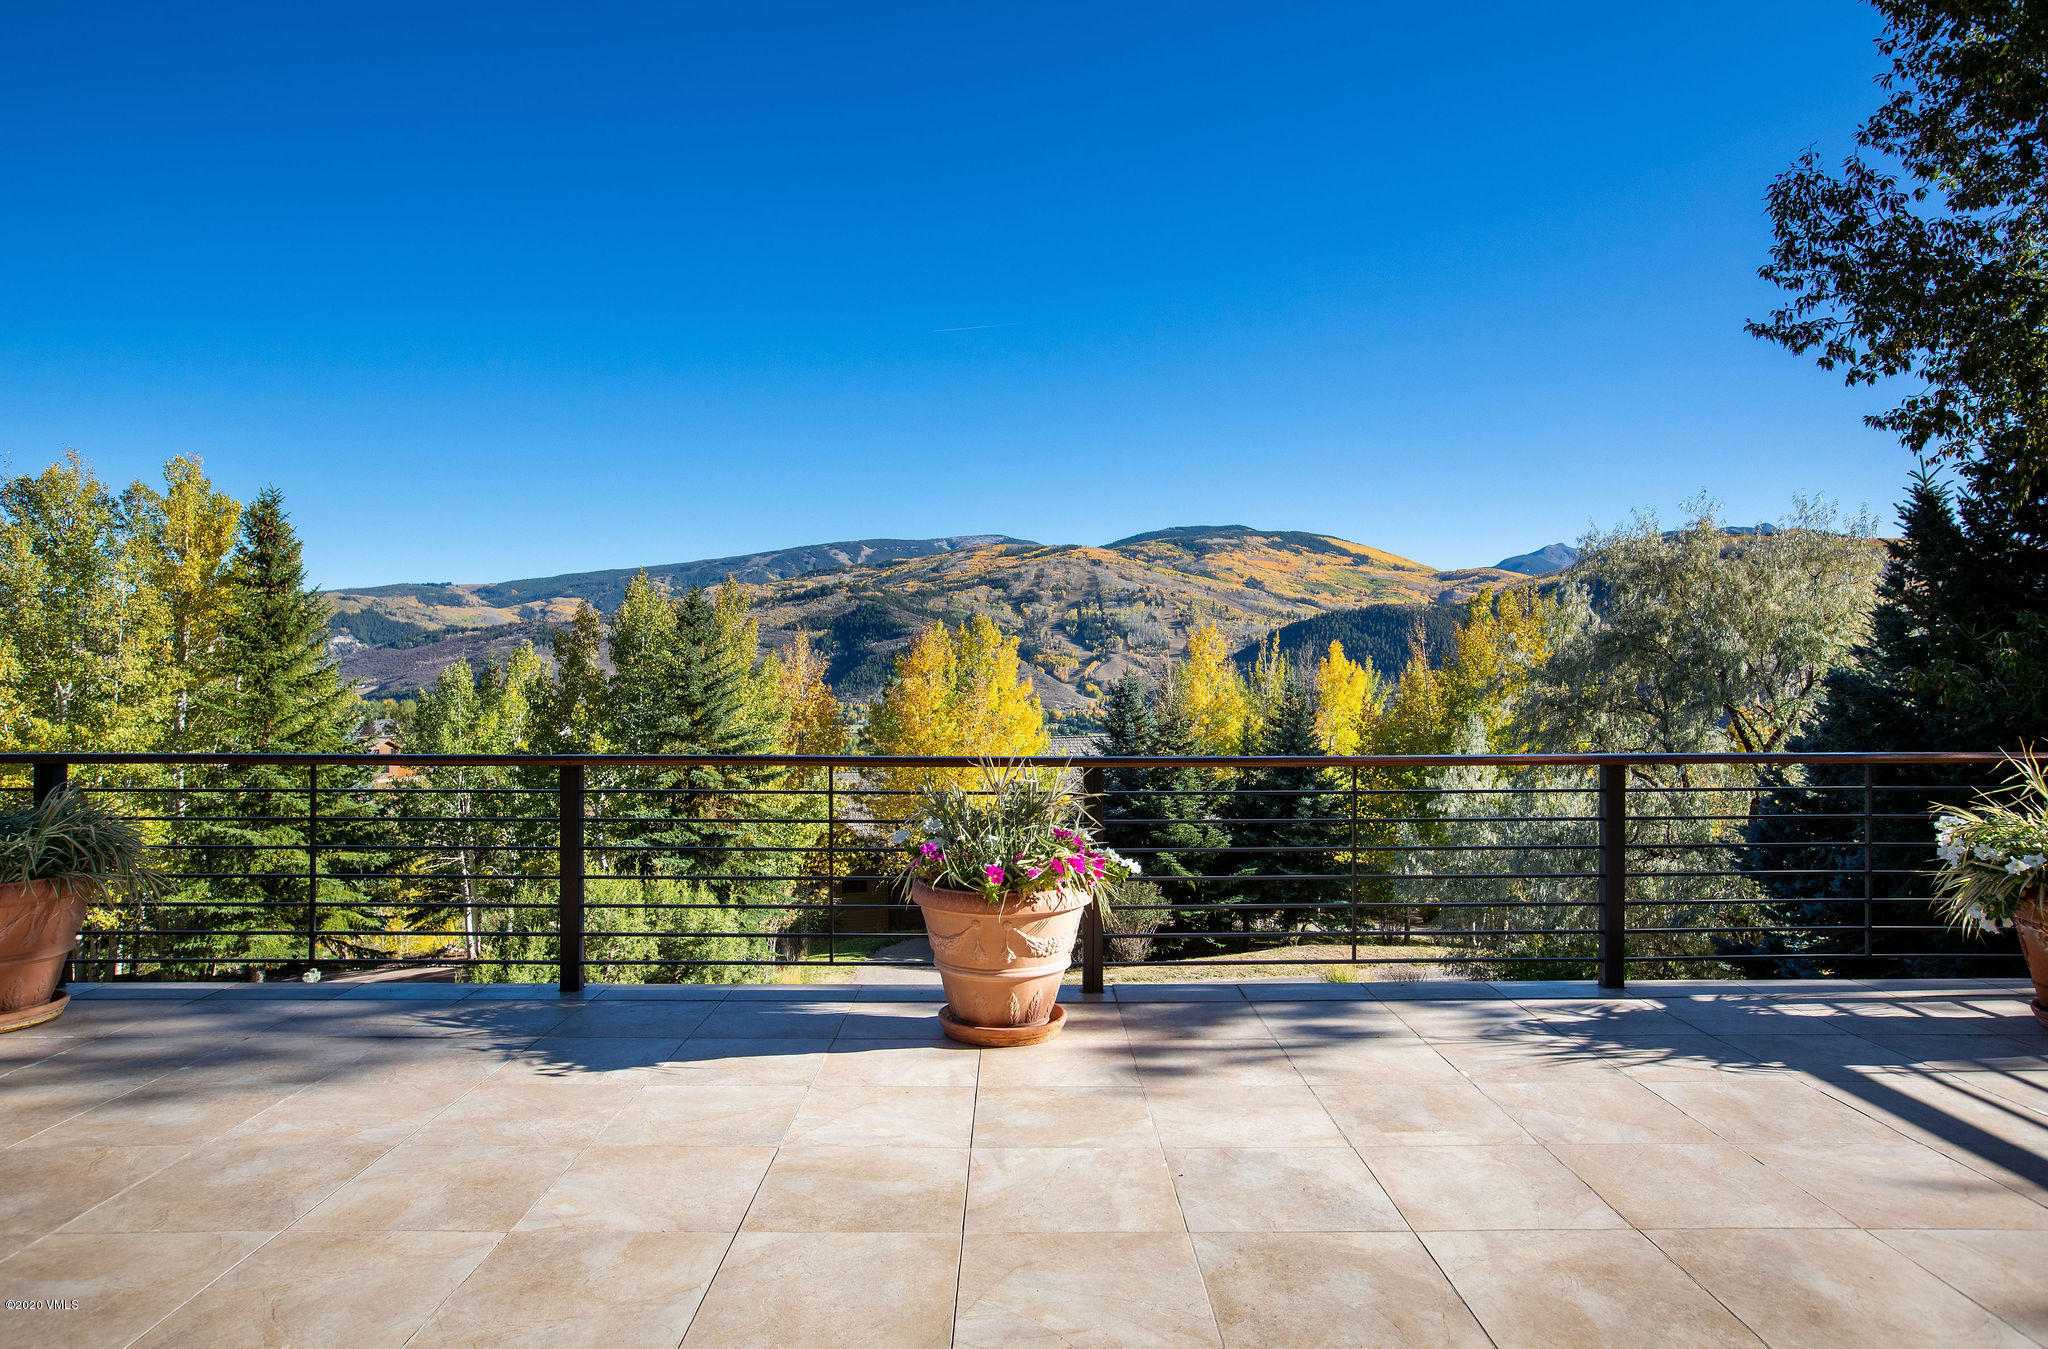 Perched atop Singletree on a quiet cul-de-sac is this contemporary home with awe-inspiring mountain and ski slope views and even a glimpse of Arrowhead's golf course. The home's prominent water feature greets you upon entry and leads you to the large and completely open living and dining space featuring gas fireplace and heated hearth, vaulted ceilings and striking sliding glass, nano doors that beckon you to the impressively large patio. For your cooking convenience, enjoy the induction range, convection oven, 2 dishwashers and island with second sink and bar stools. The main level also includes entry from the oversized 3-car garage, laundry room, mud room with heated bench, the first of 2 offices, powder room, junior master suite and elevator to each floor. The home's upper level houses a private master suite complete with balcony, beautiful 5-piece bath and large second office perfect for today's work-from-home culture. The lower level includes a second, walk-out living space with nano doors leading to another large patio and the flat, grassy yard, wet bar, 2 guest bedrooms and bathrooms, and a large, heated storage room. This home was designed and constructed with environmentally friendly products and its notable features include marble, granite and porcelain finishes throughout, alderwood doors and trim, Lutron lighting control system, energy recovery ventilator and ample parking.